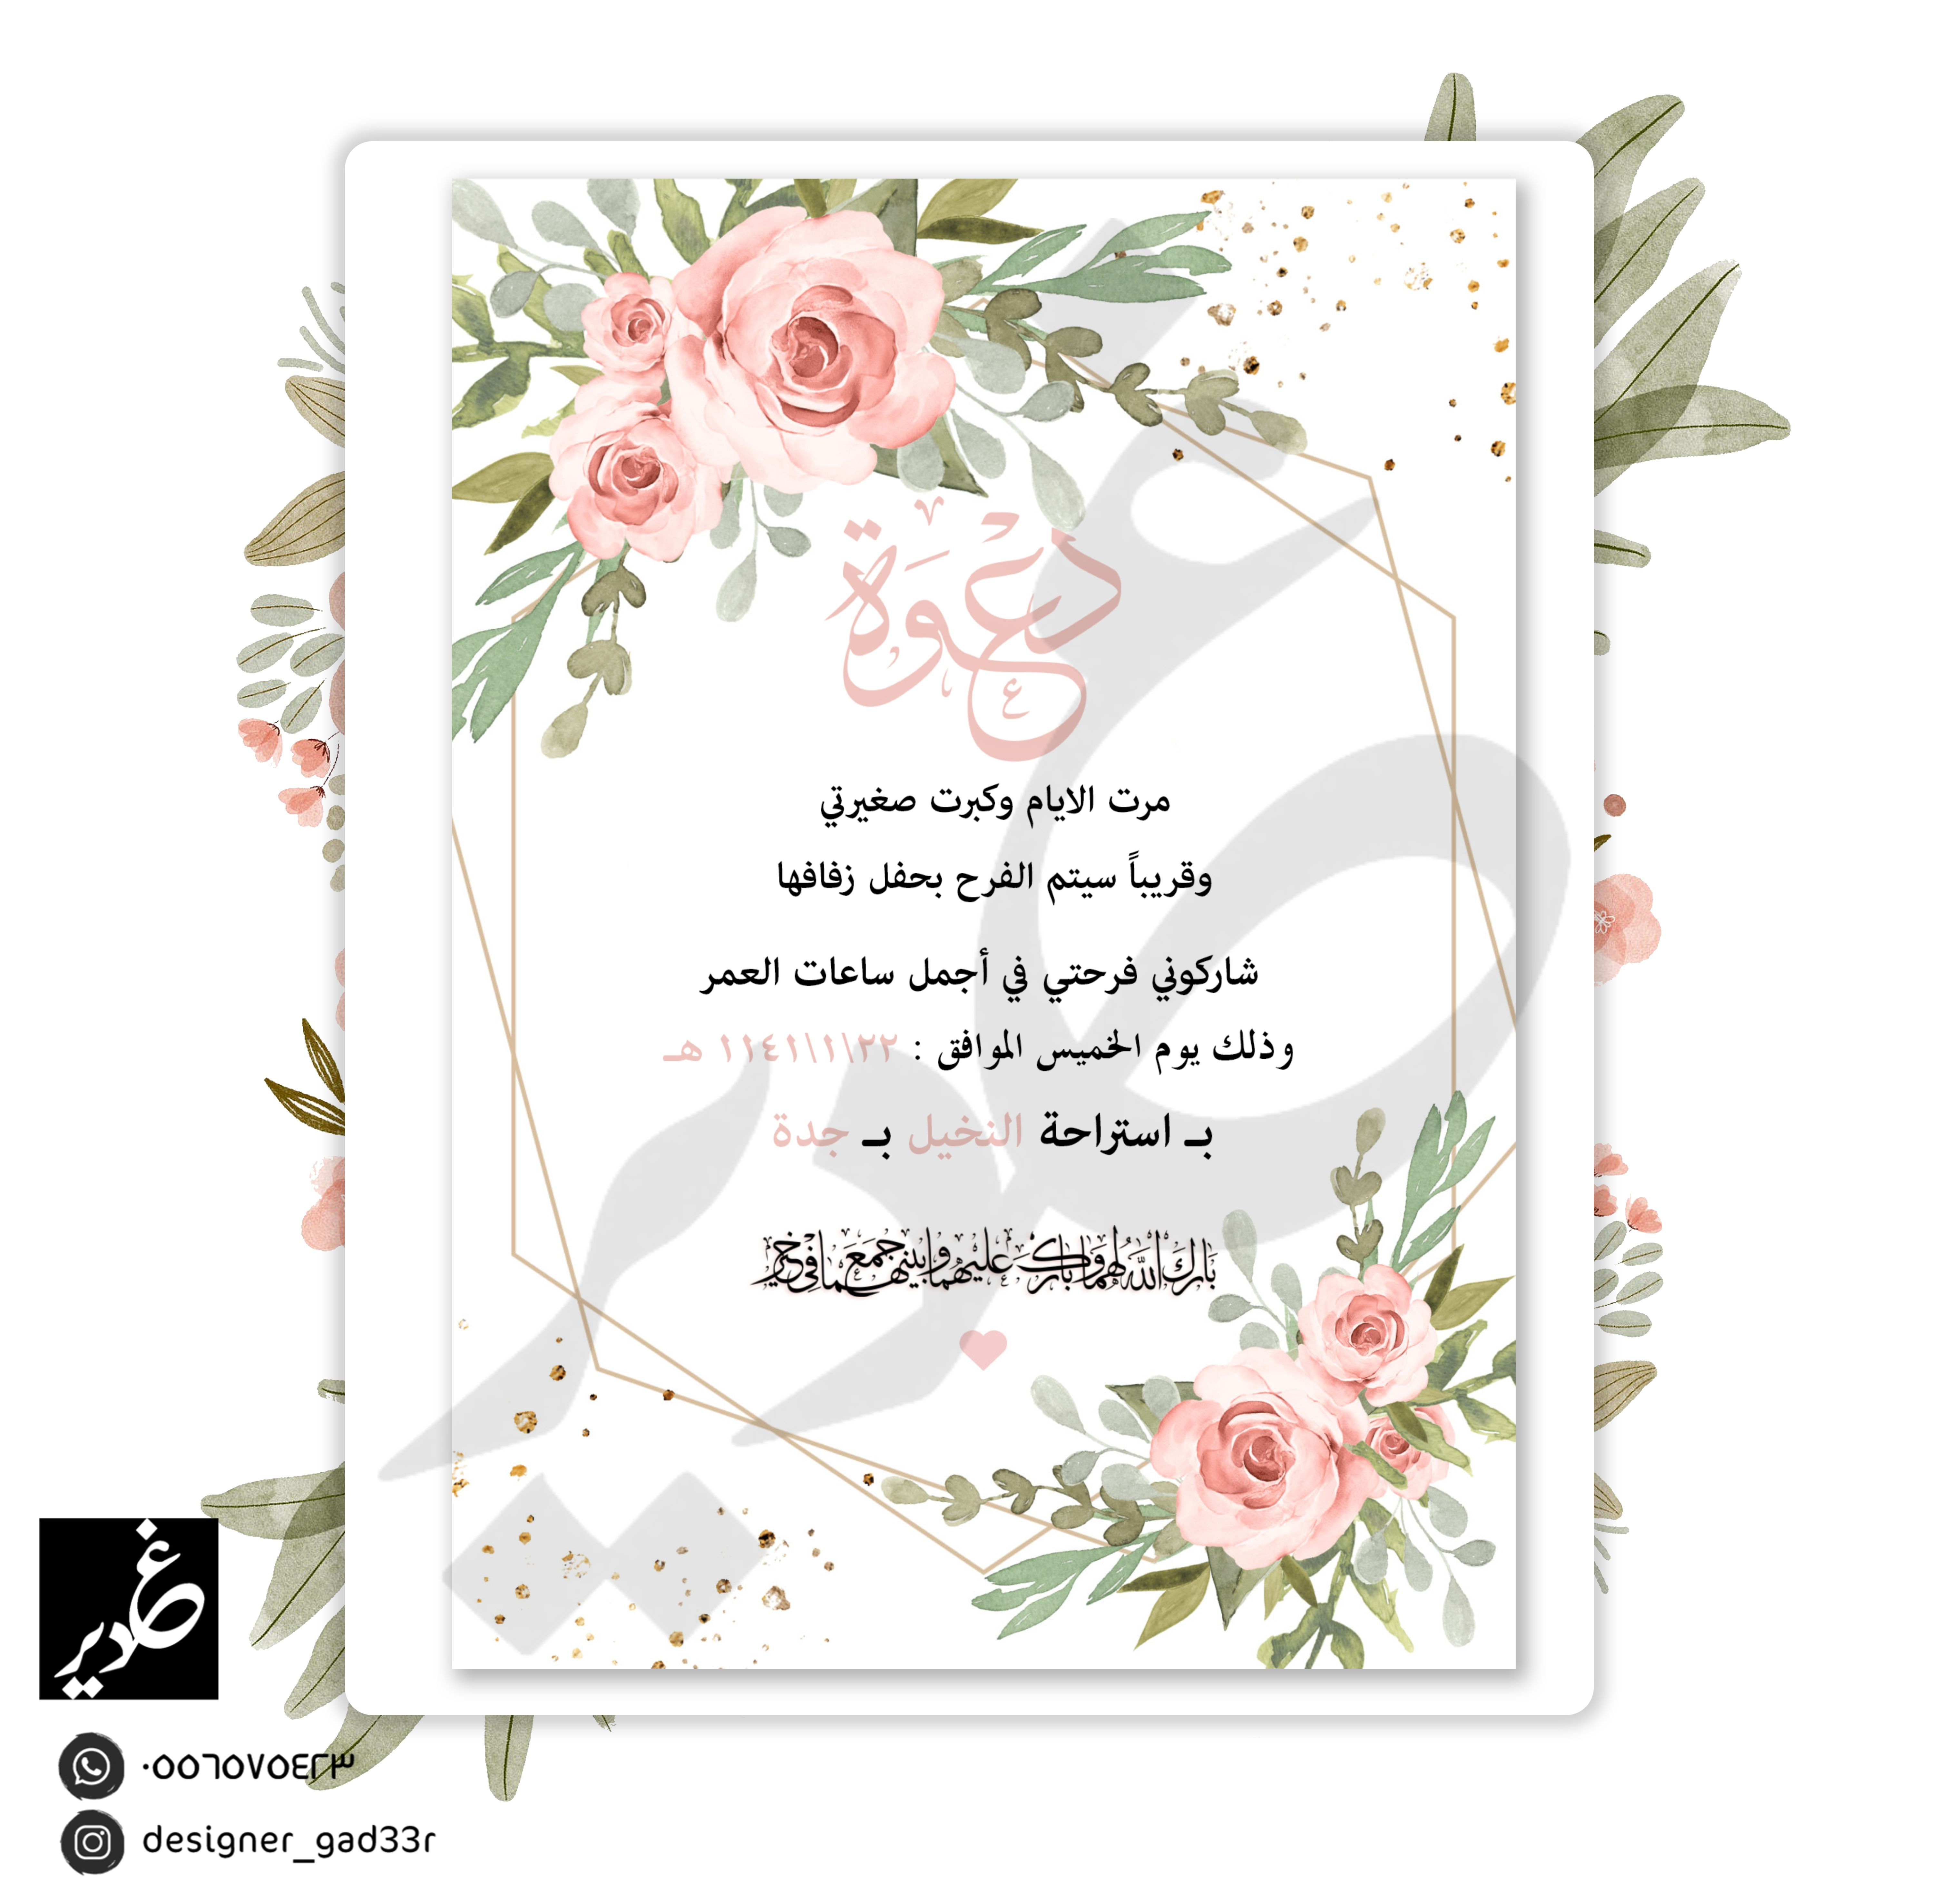 دعوة زواج دعوة زفاف Gifts For Wedding Party Wedding Invitation Background Invitation Background